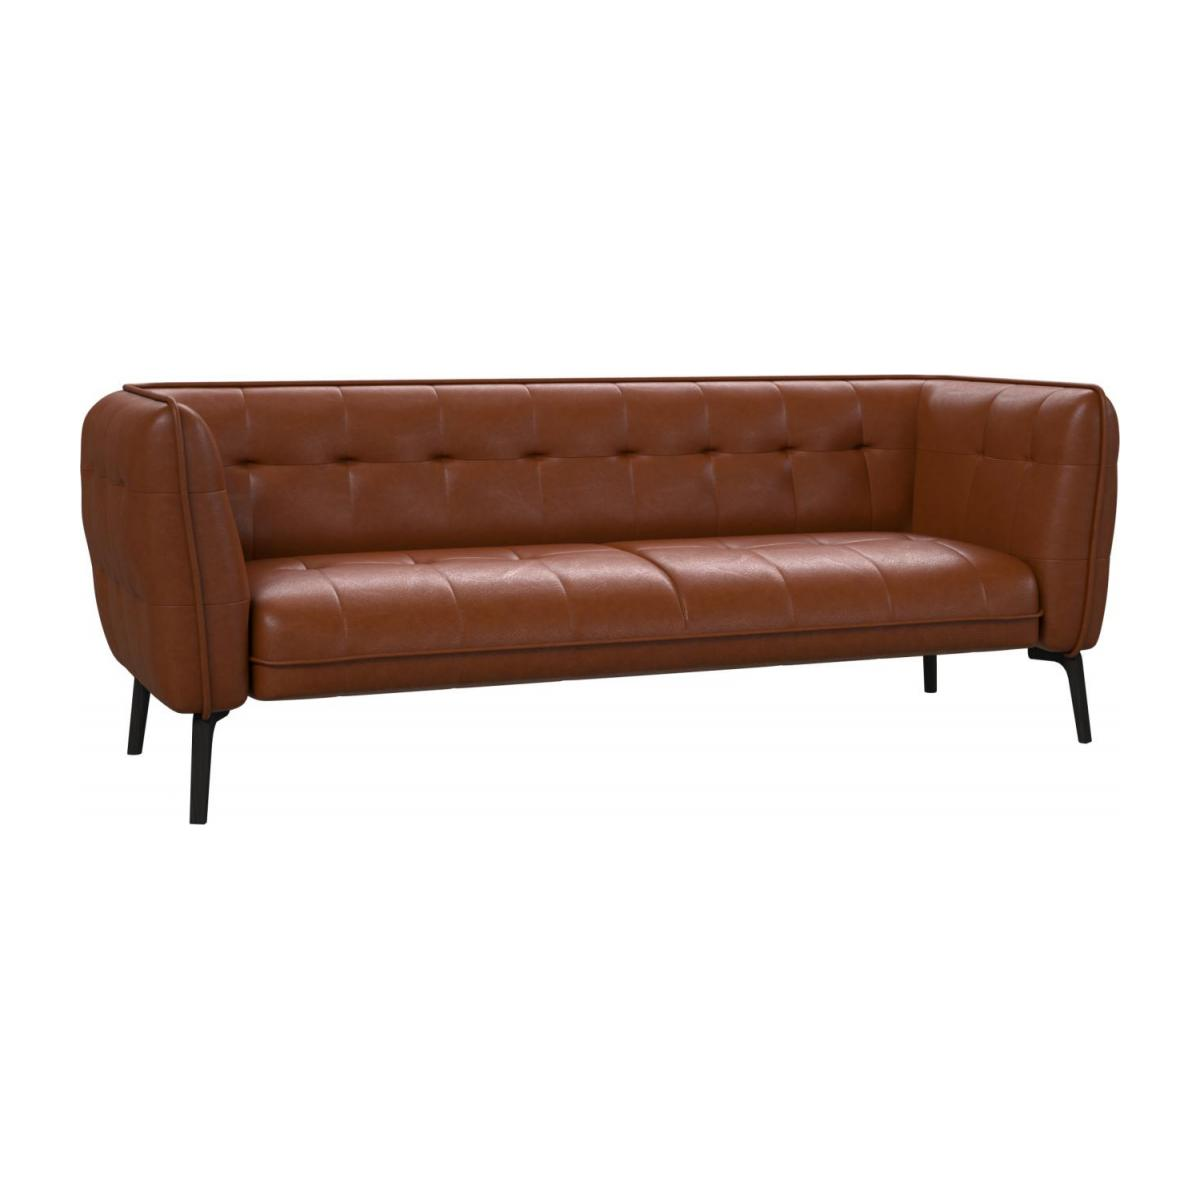 3 seater sofa in Vintage aniline leather, old chestnut and dark feet n°1